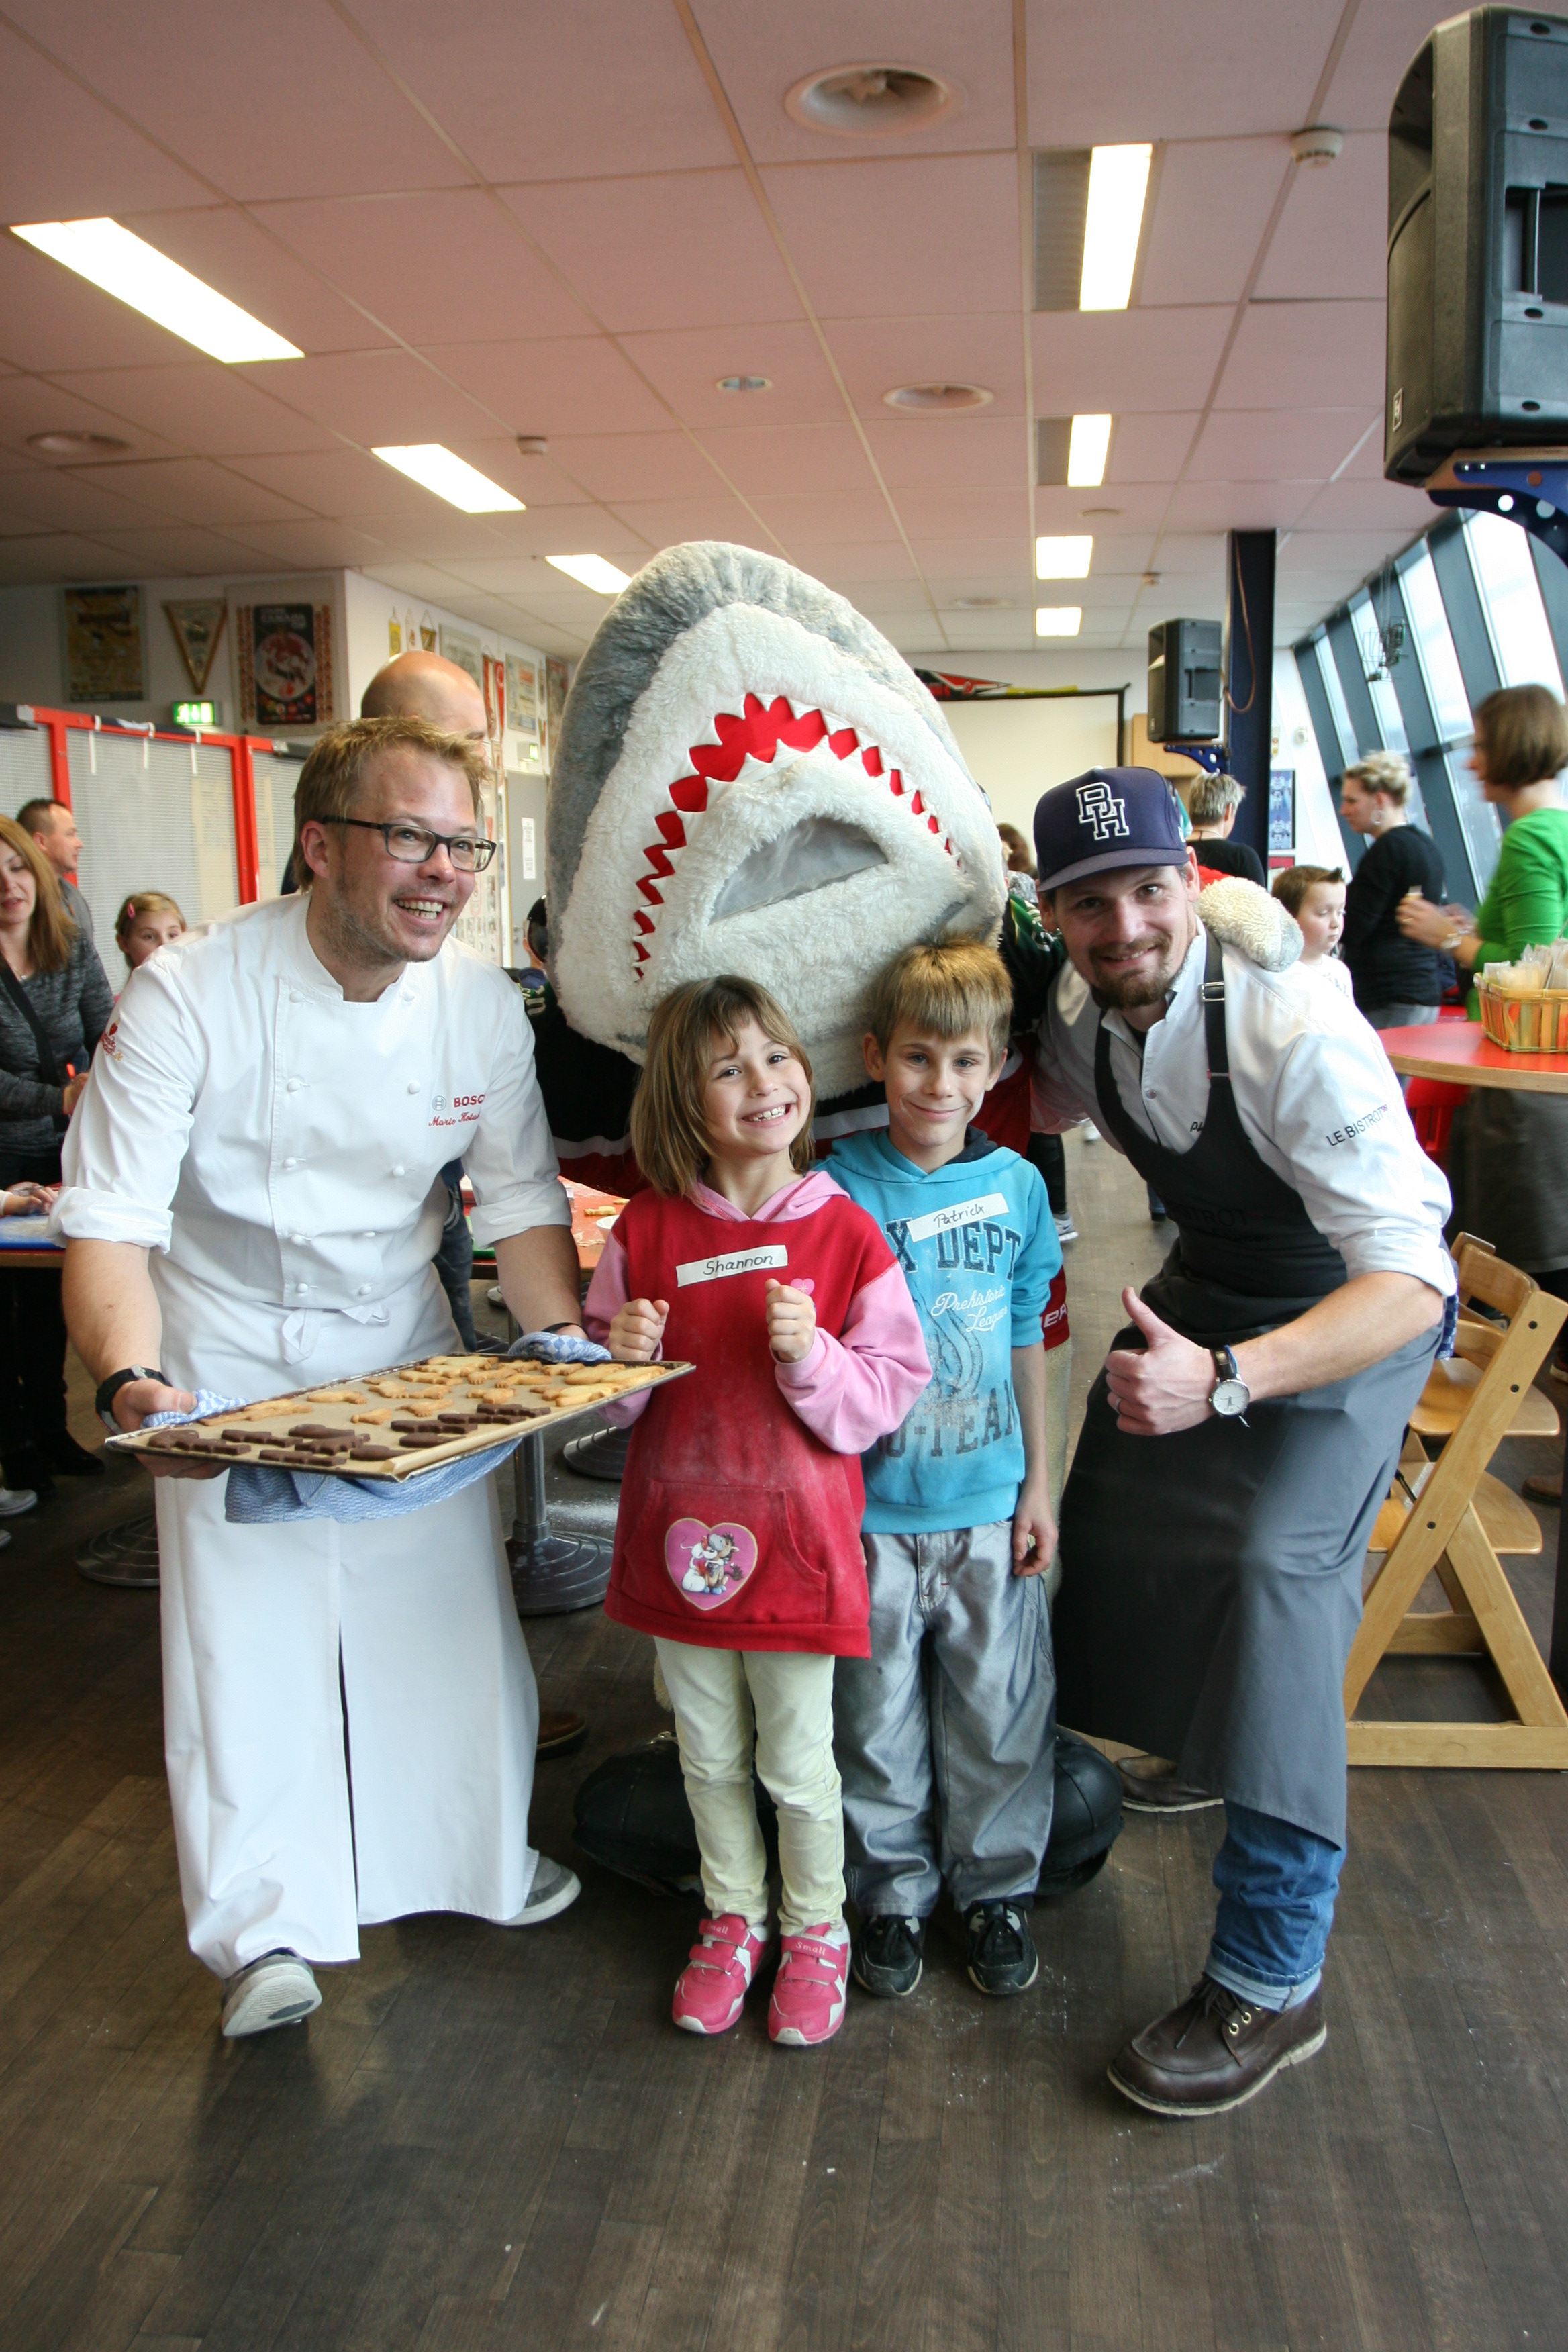 Mario, Philipp, Sharky und Kinder